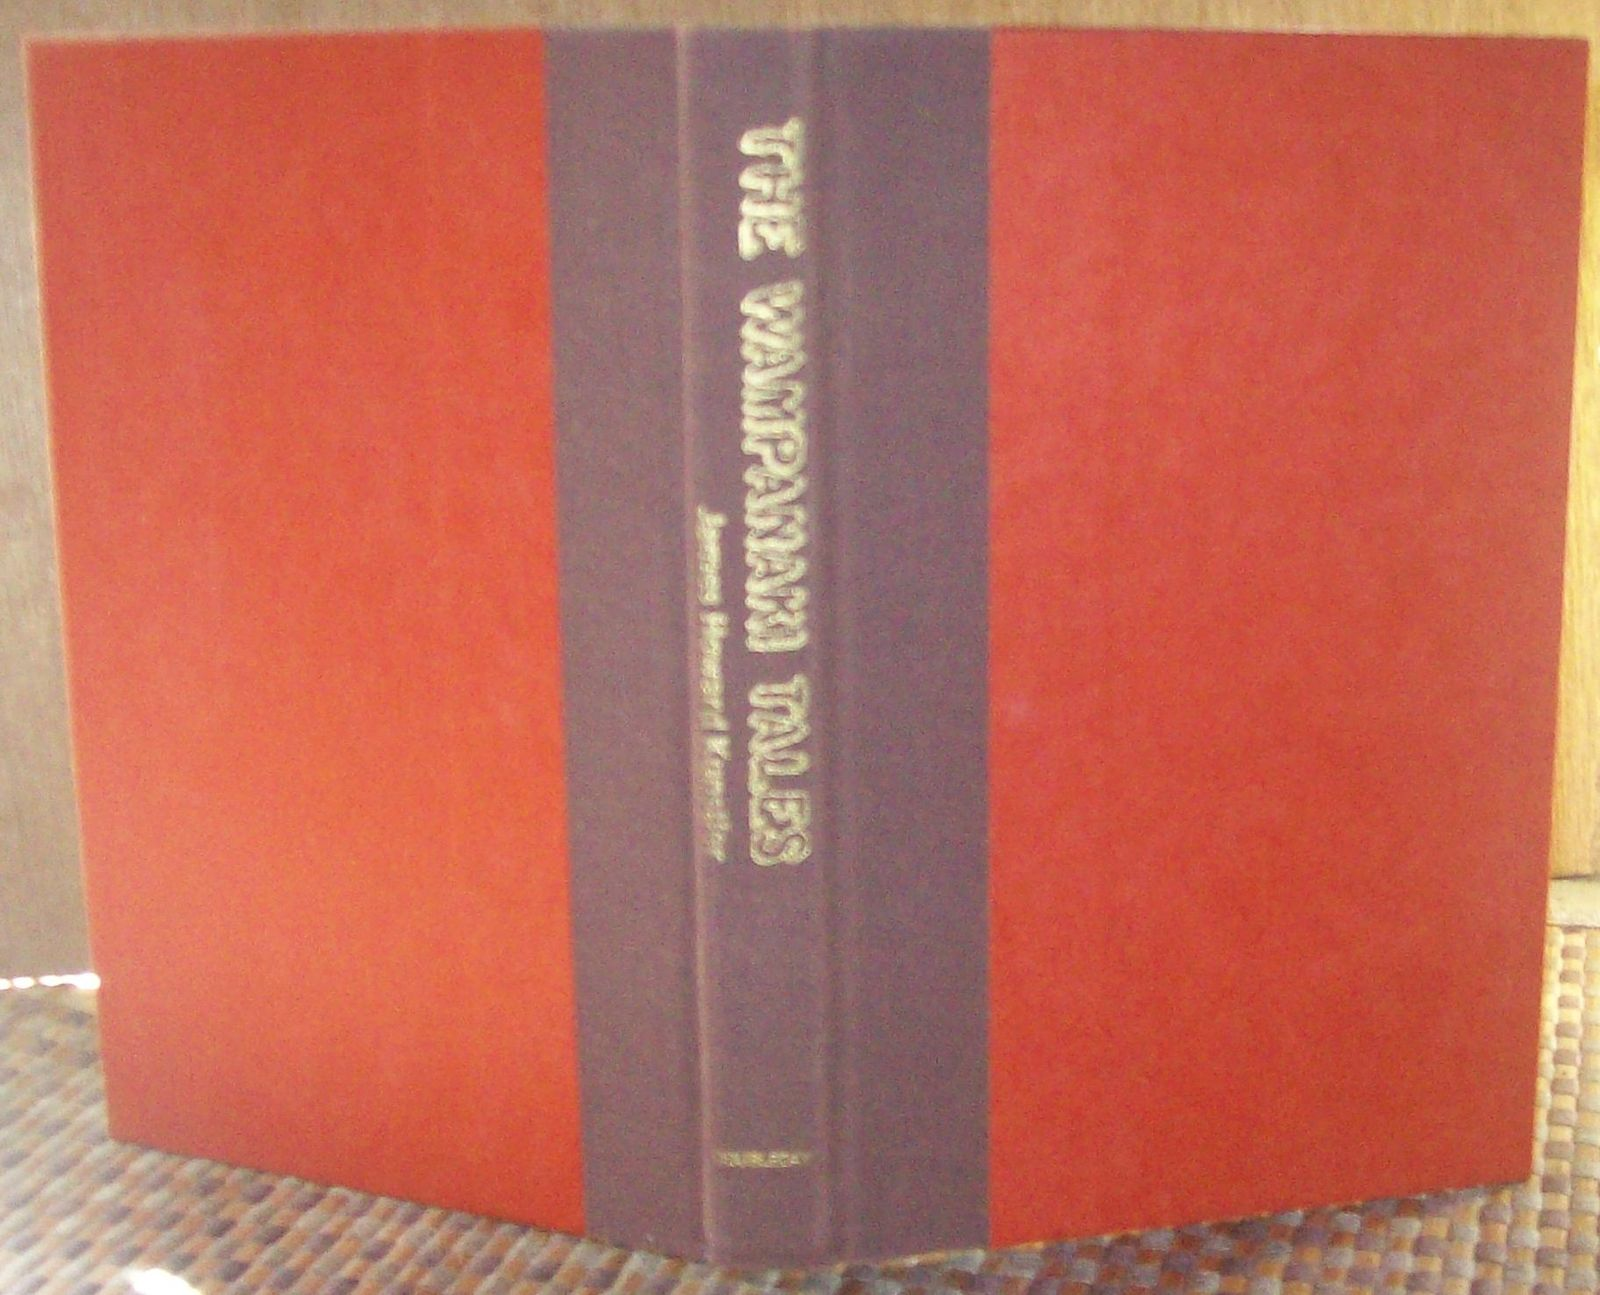 The Wampanaki Tales by James Howard Kunstler 1979 HBDJ 1st